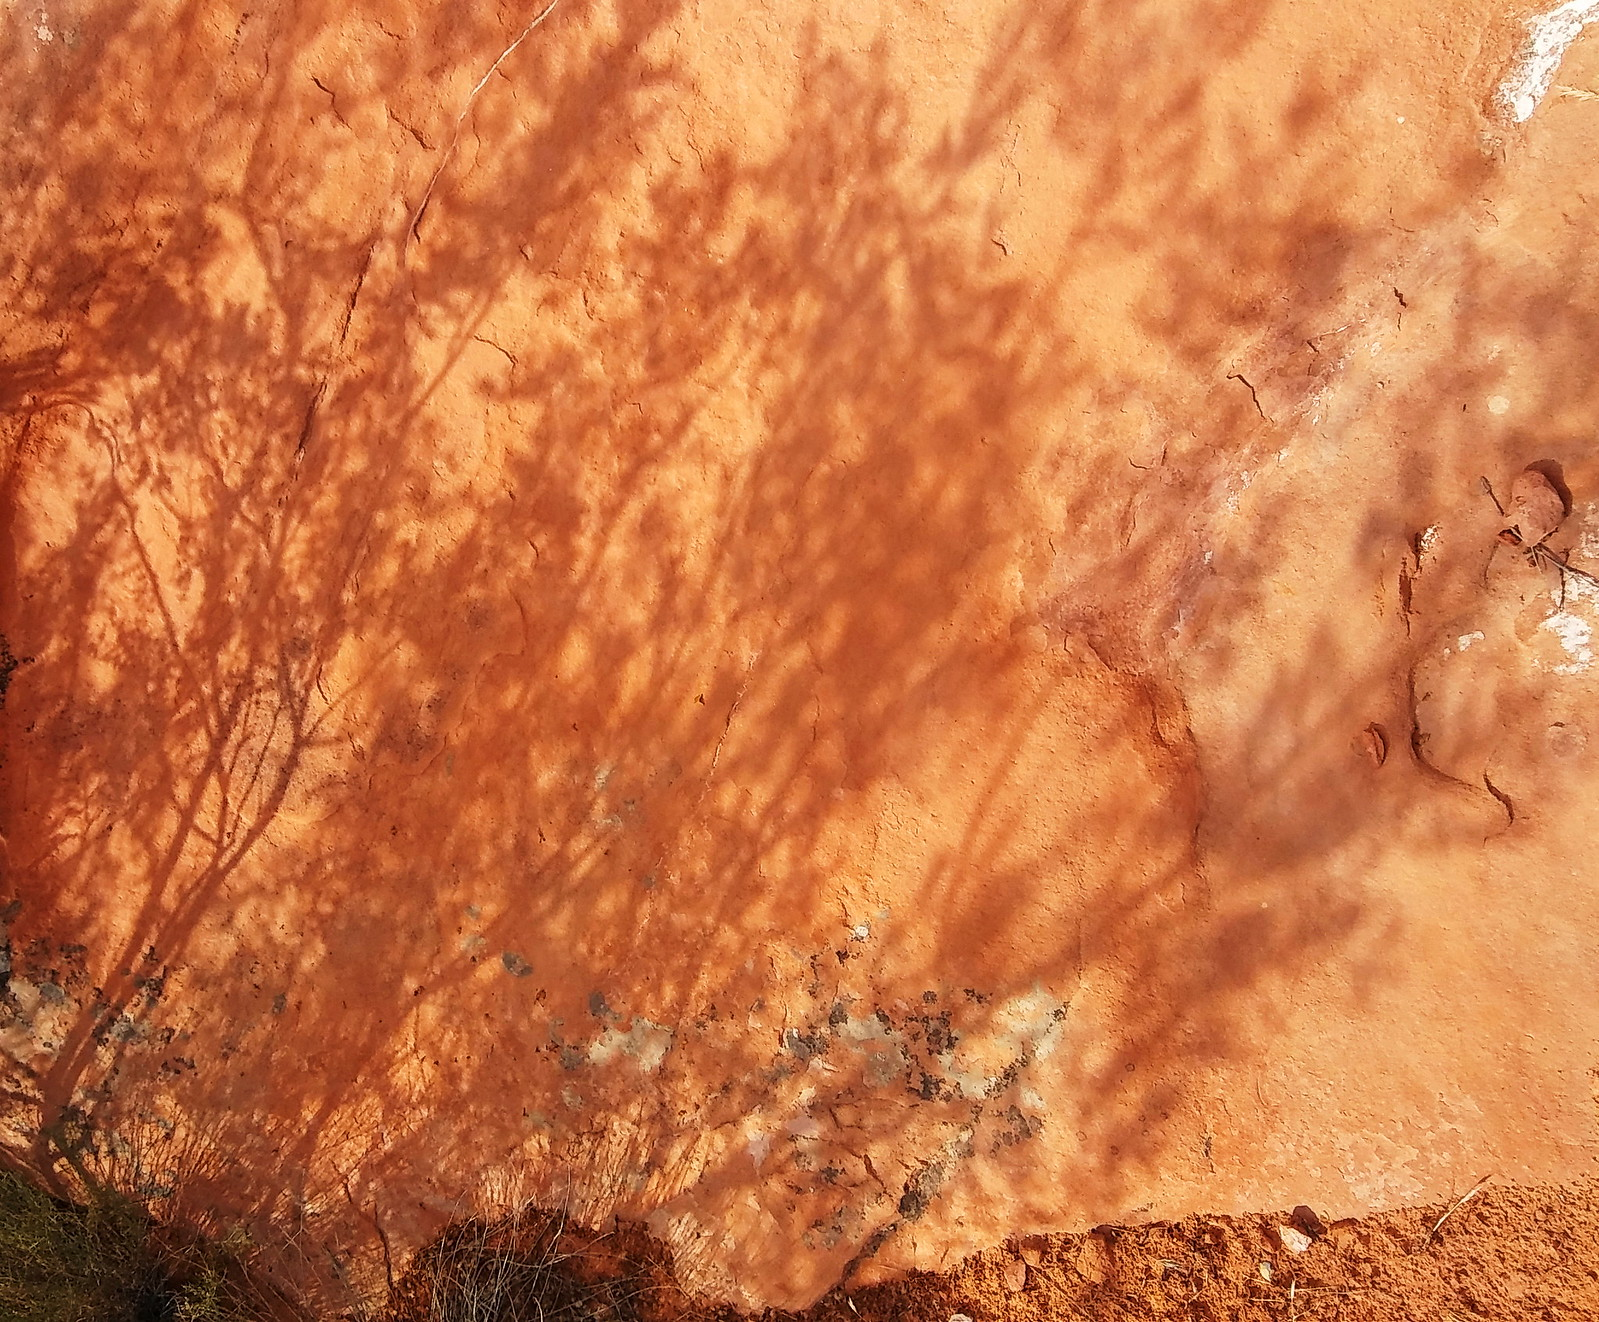 Spying eyes, Valley of Fire, Nevada